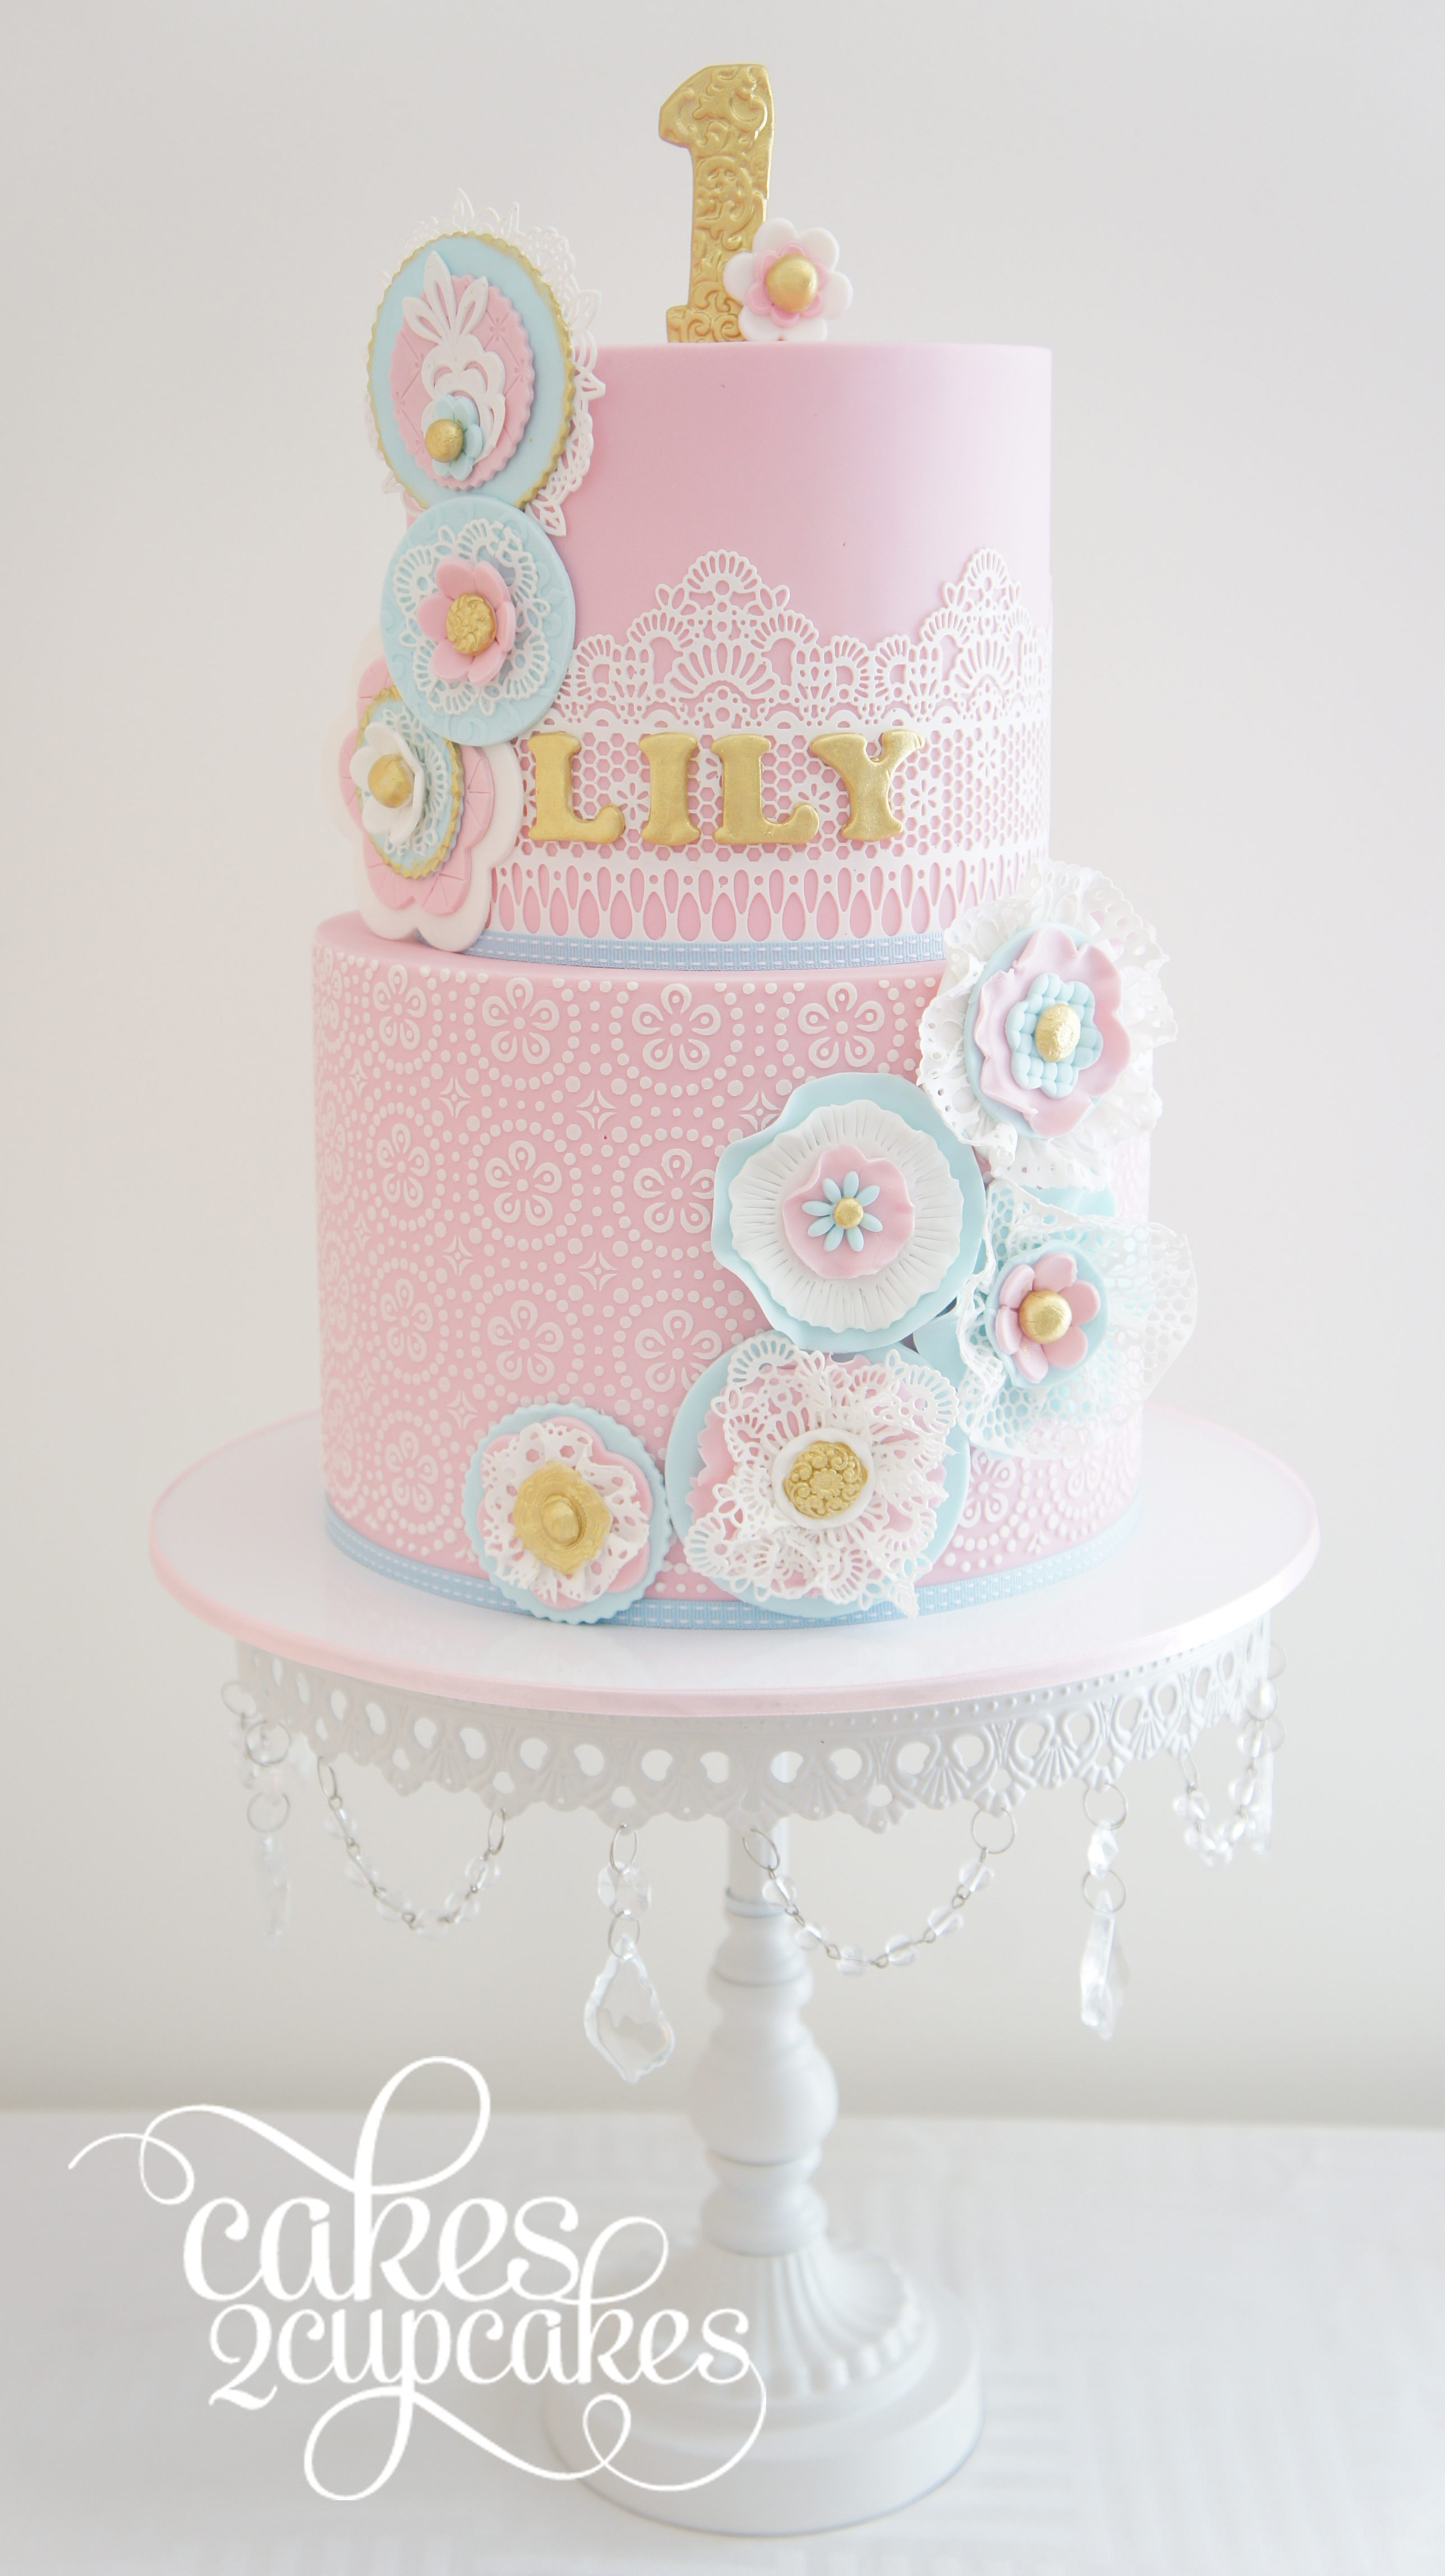 cakes2cupcakes-pink-blue-lace.jpg